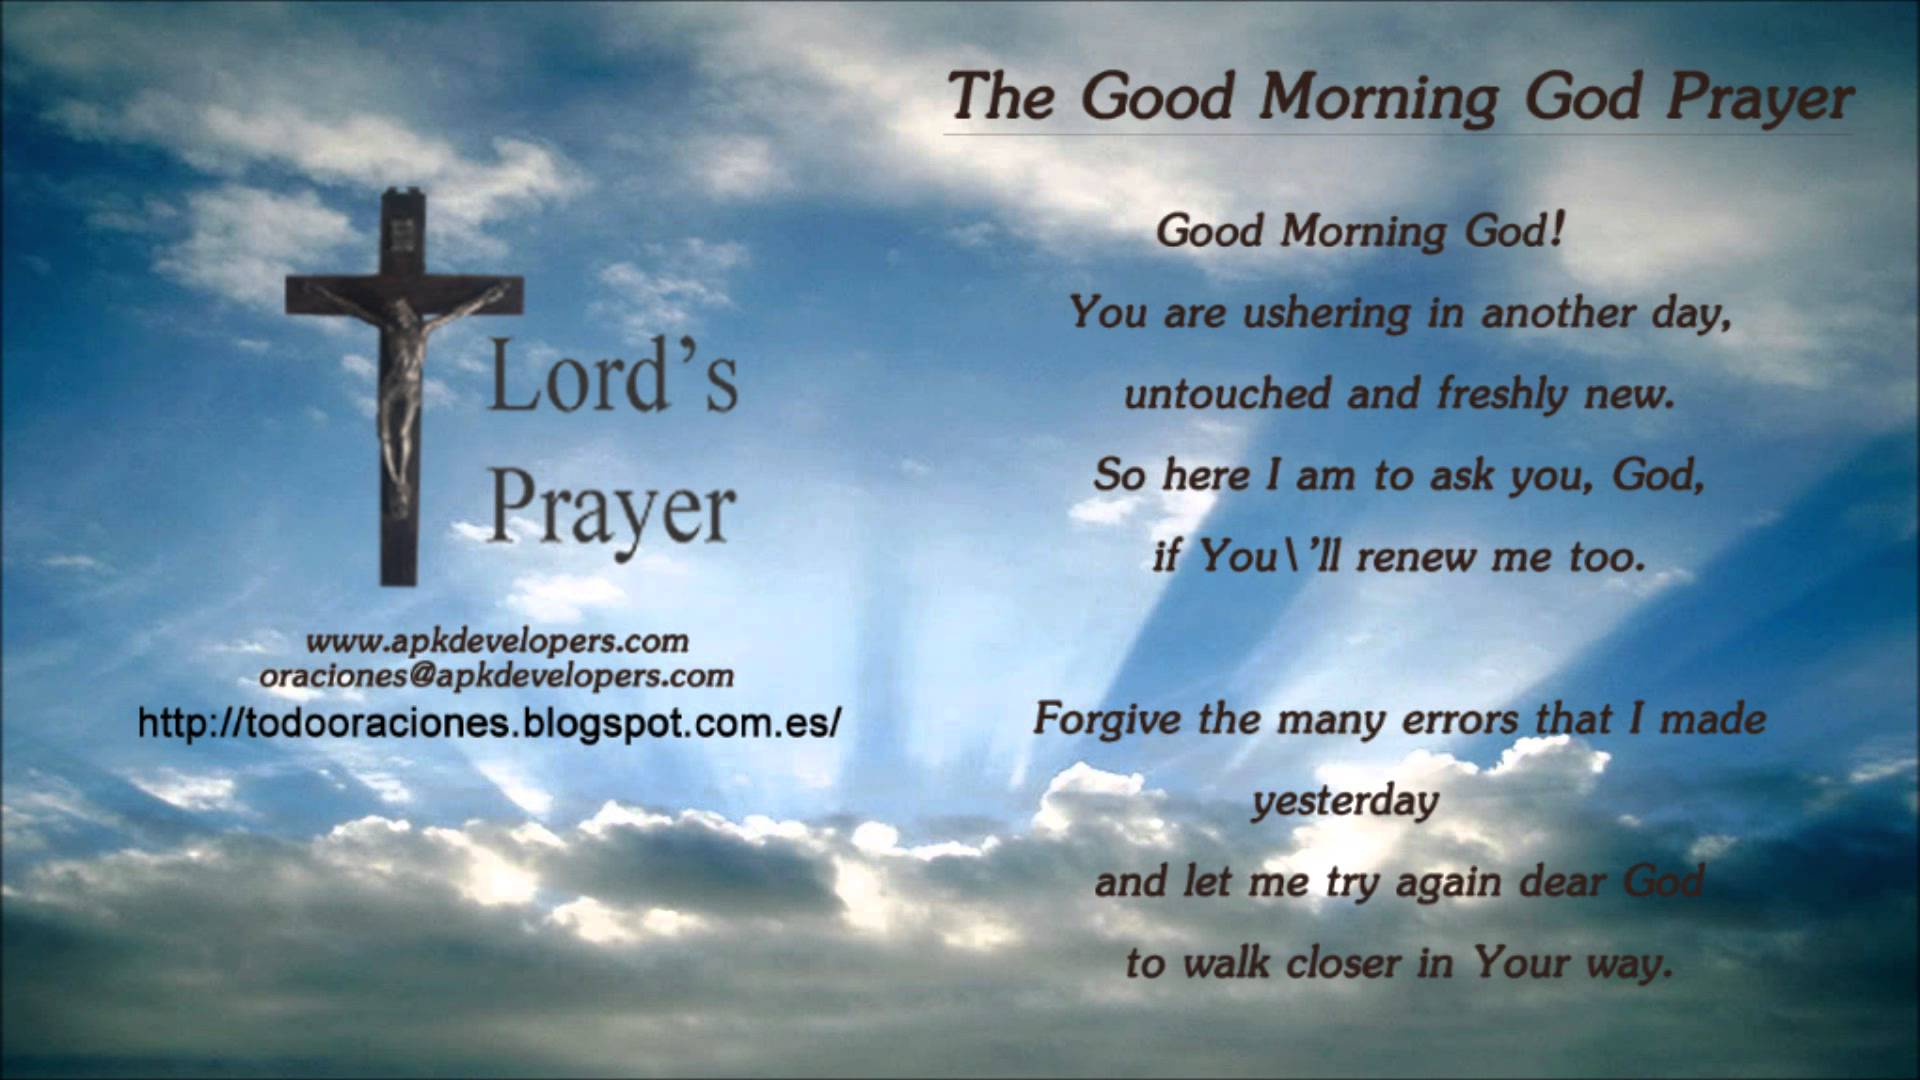 Good Morning Wishes With Prayer Pictures, Images